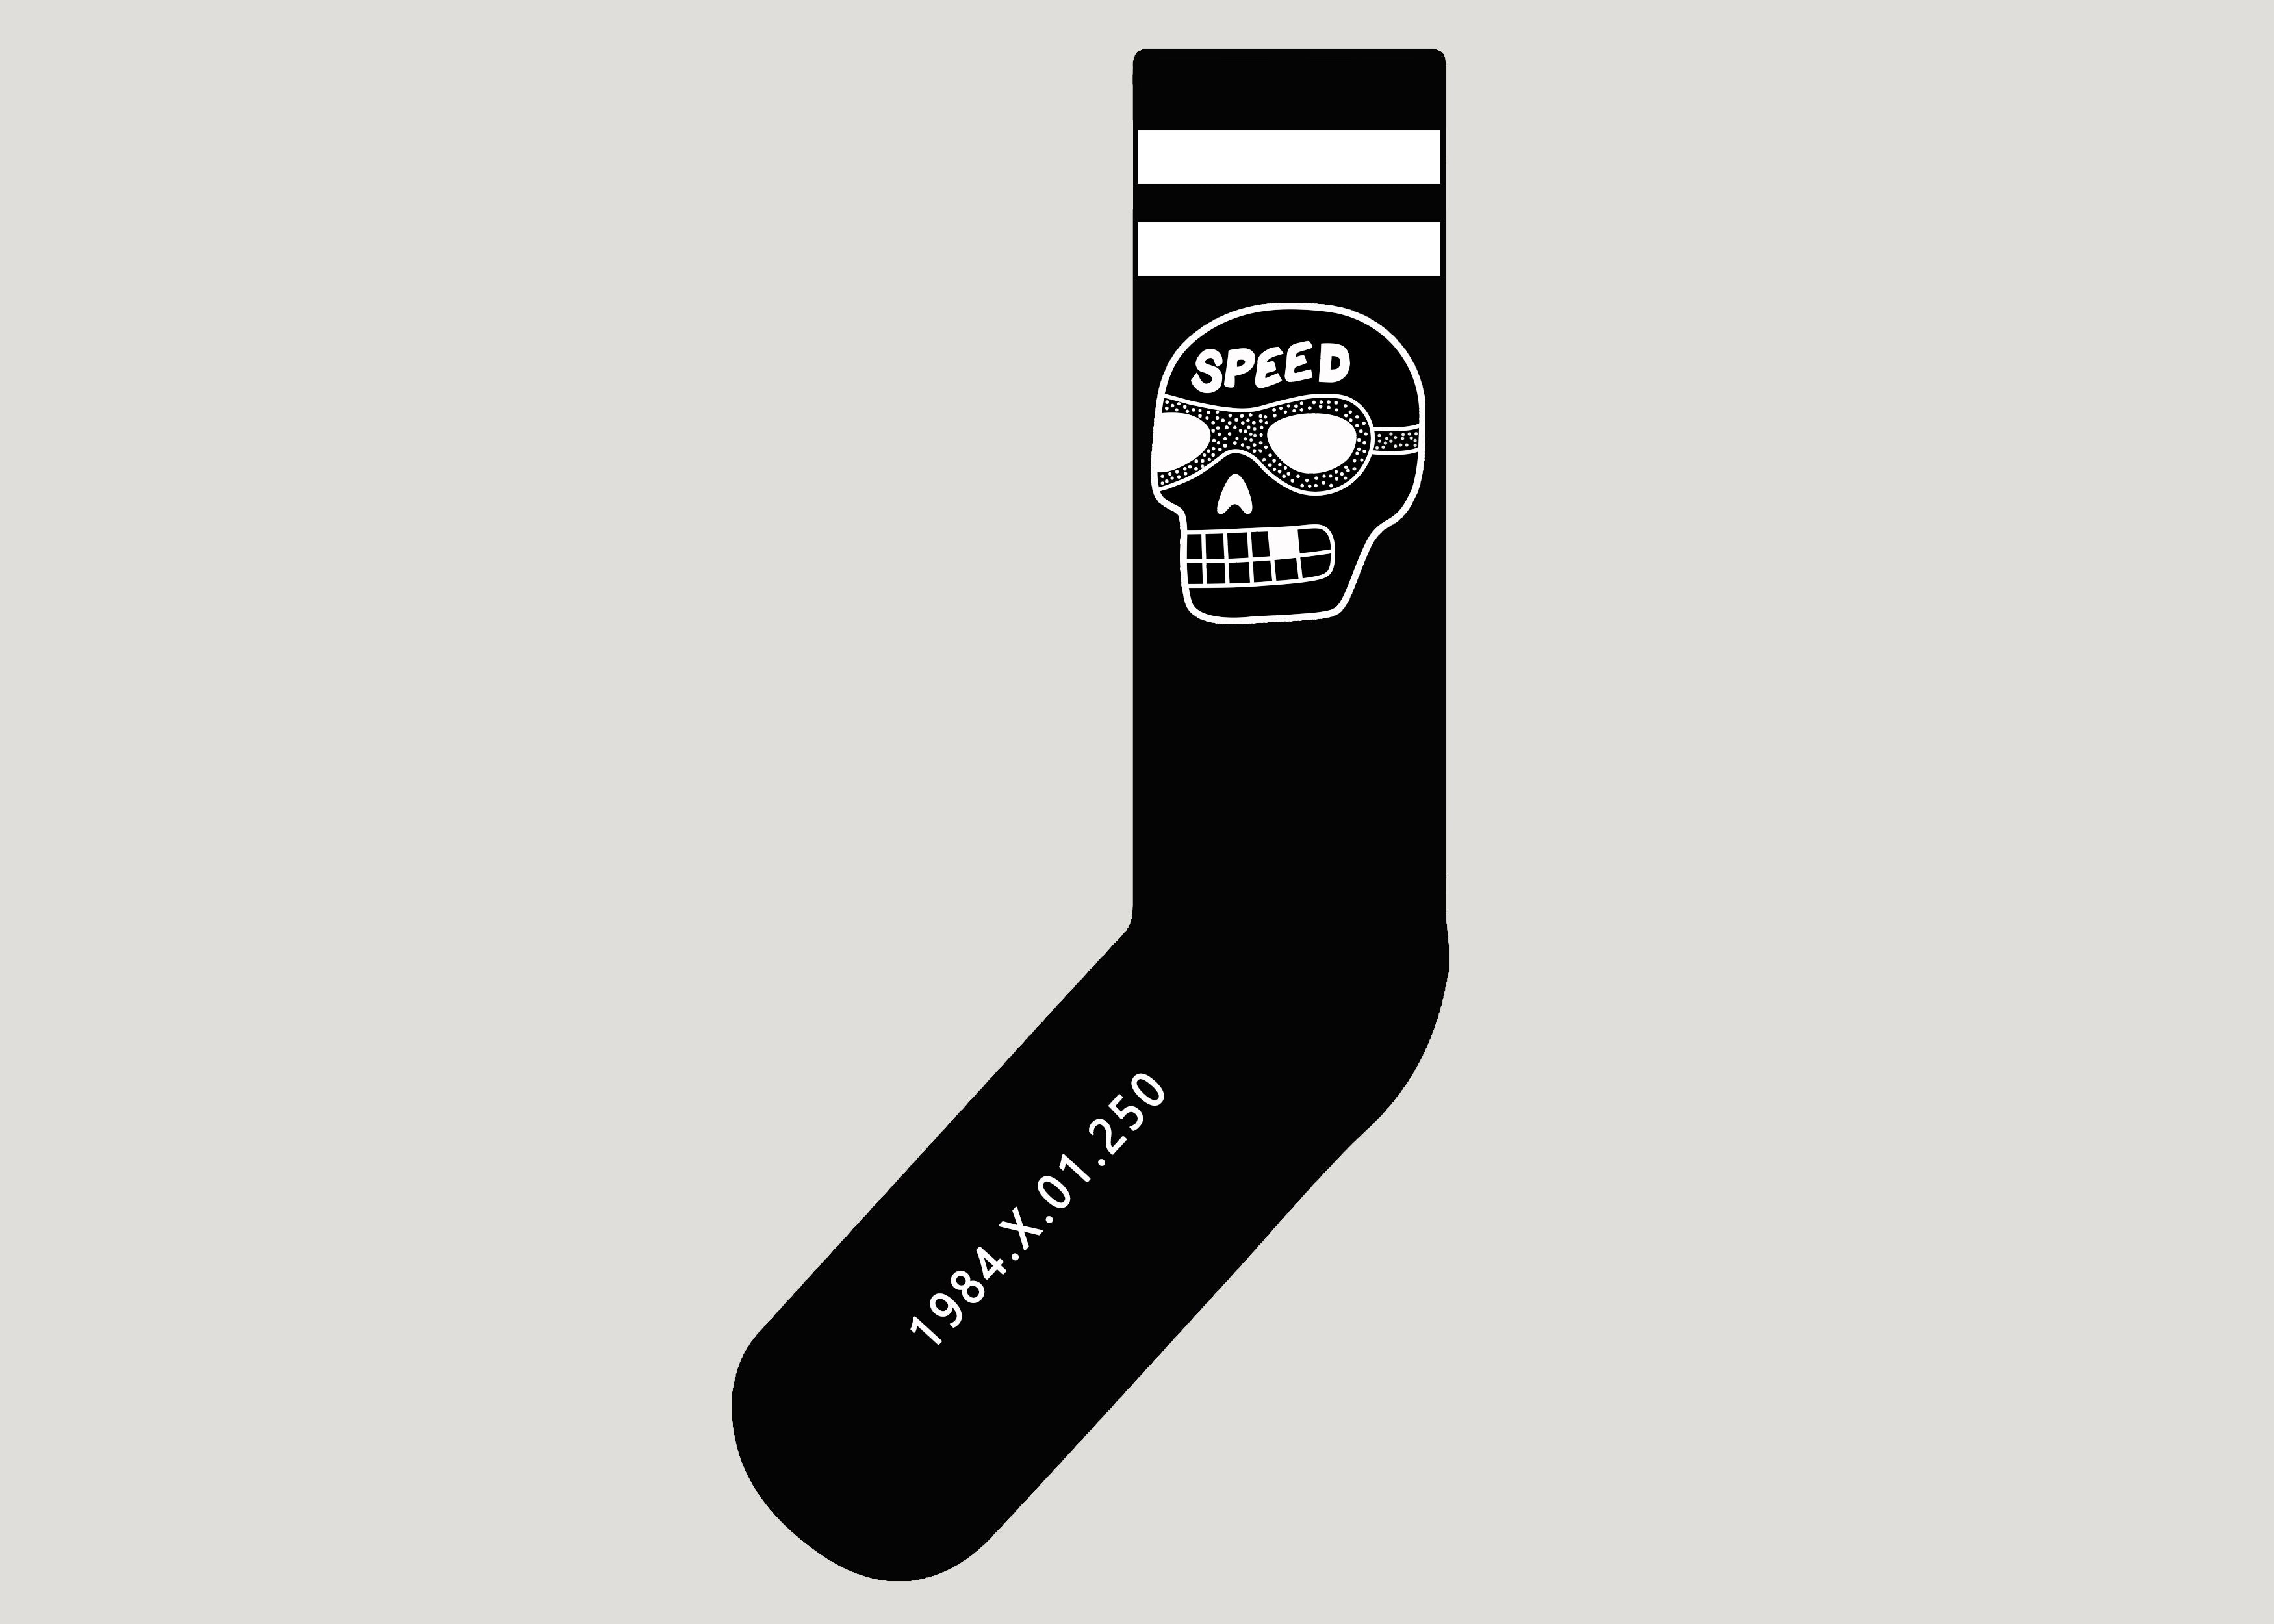 AUGUST 2019 Limited Sock Release (08-22-19) - PRESALE